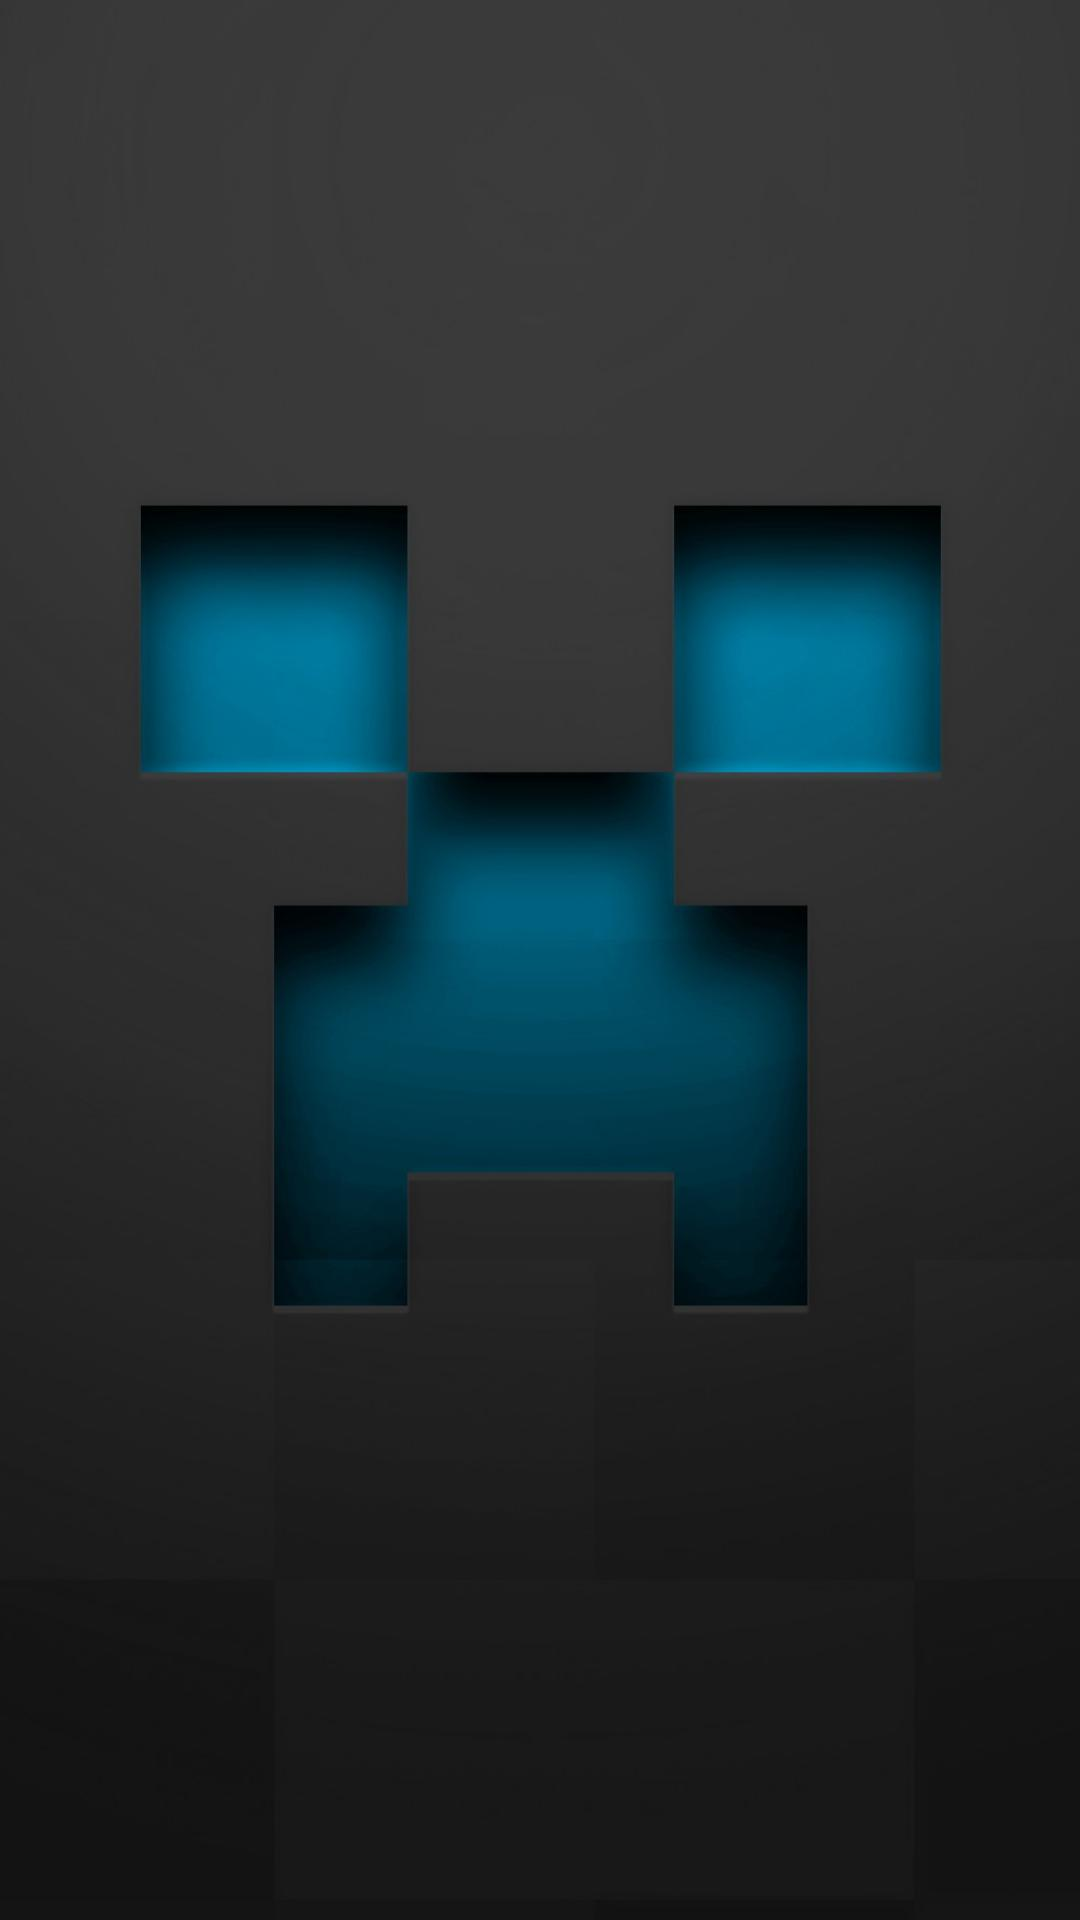 Download Wallpaper Minecraft Iphone - Minecraft-iPhone-Wallpaper  Image_136882.jpg